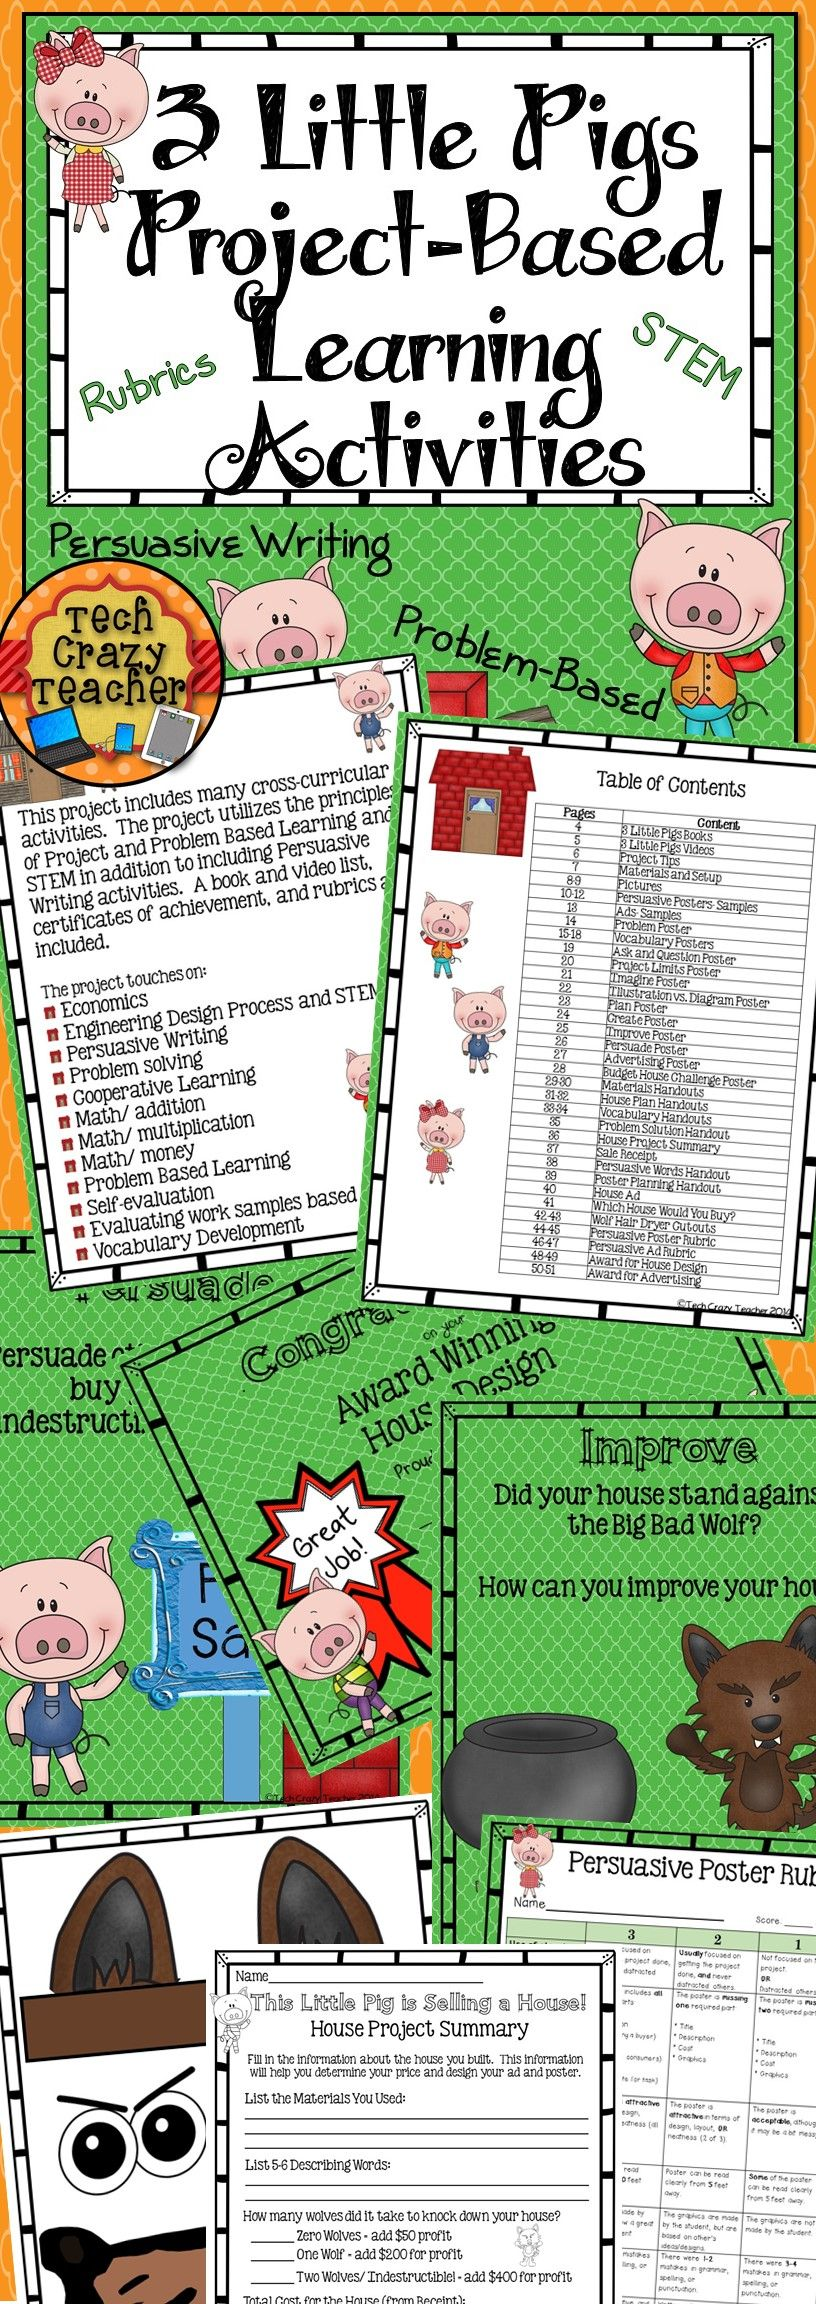 3 Little Pigs Project-Based Learning Activities: Persuasive writing, STEM, Problem-Based and Project Based learning all in one! Rubrics included $